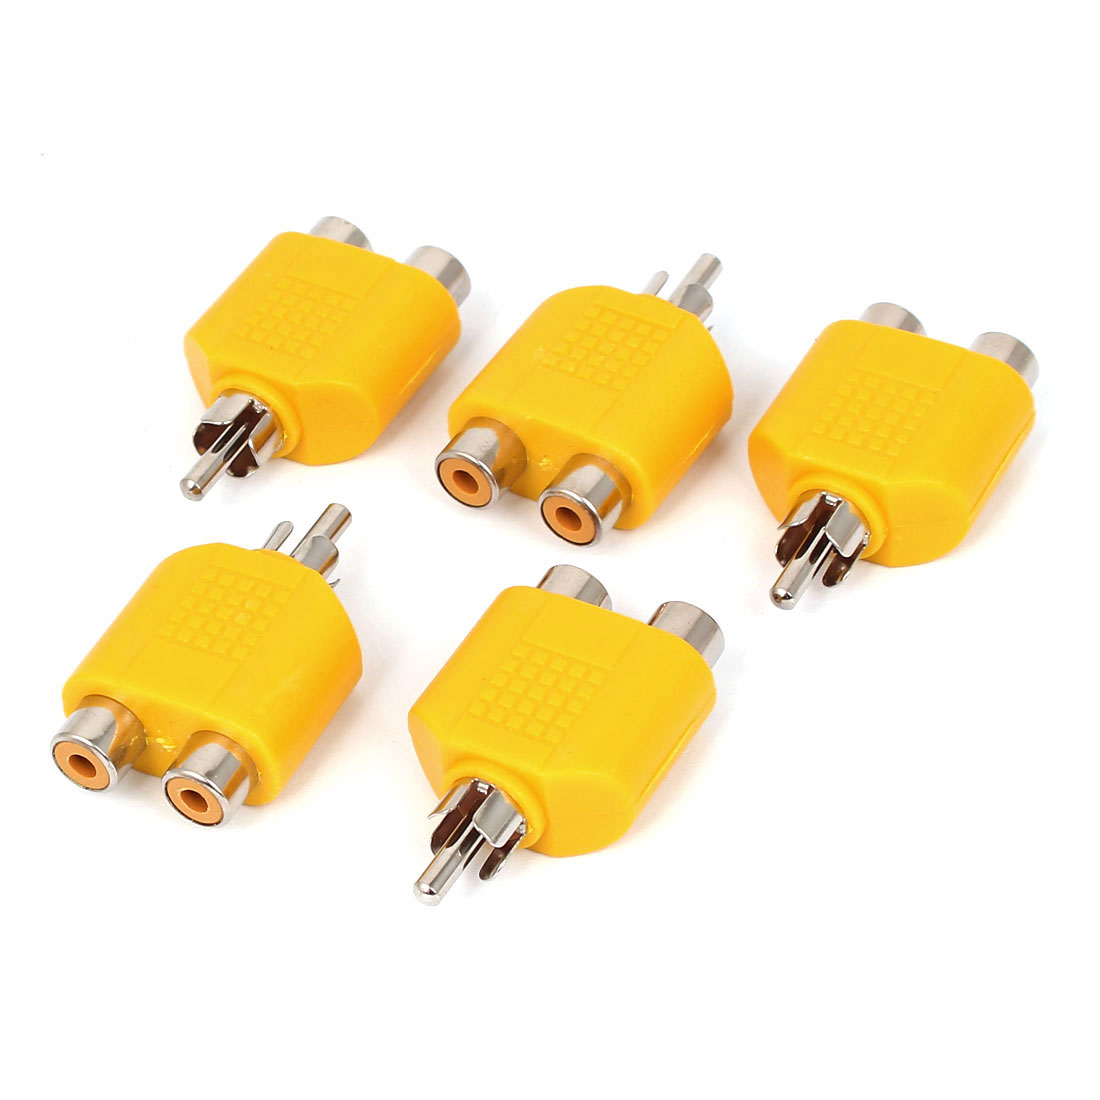 Yellow RCA Y Splitter Male to 2 Female M/F Stereo Audio Video Adaptor Connector 5pcs